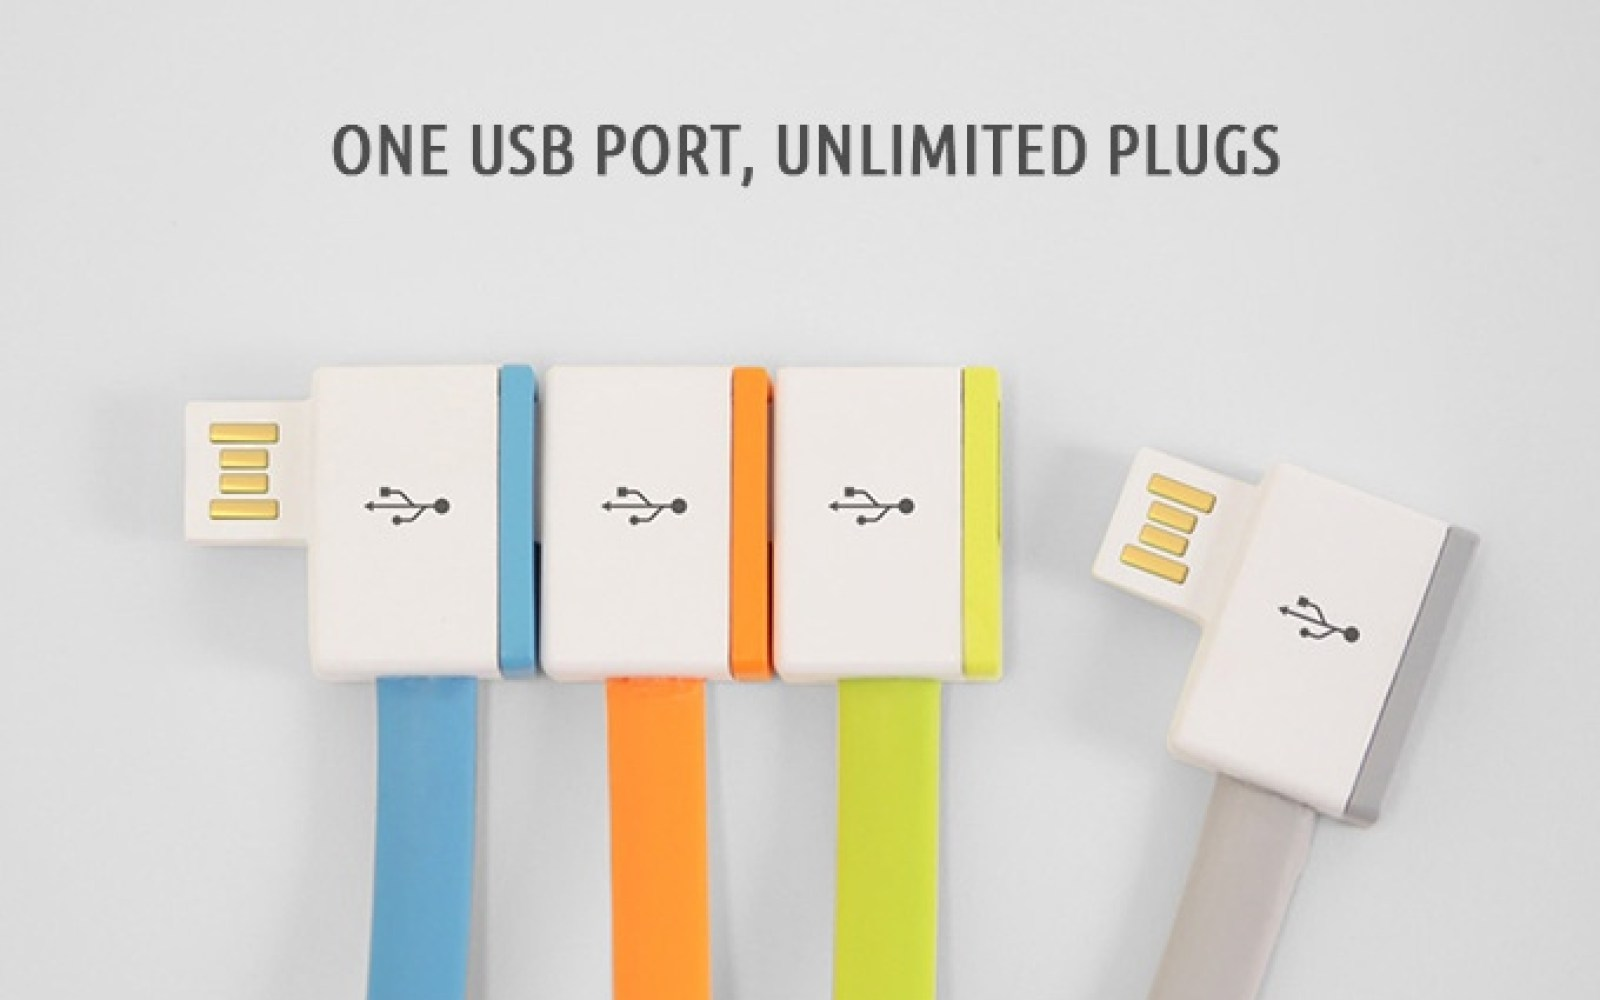 InfiniteUSB cables offer an endless supply of USB ports for your laptop